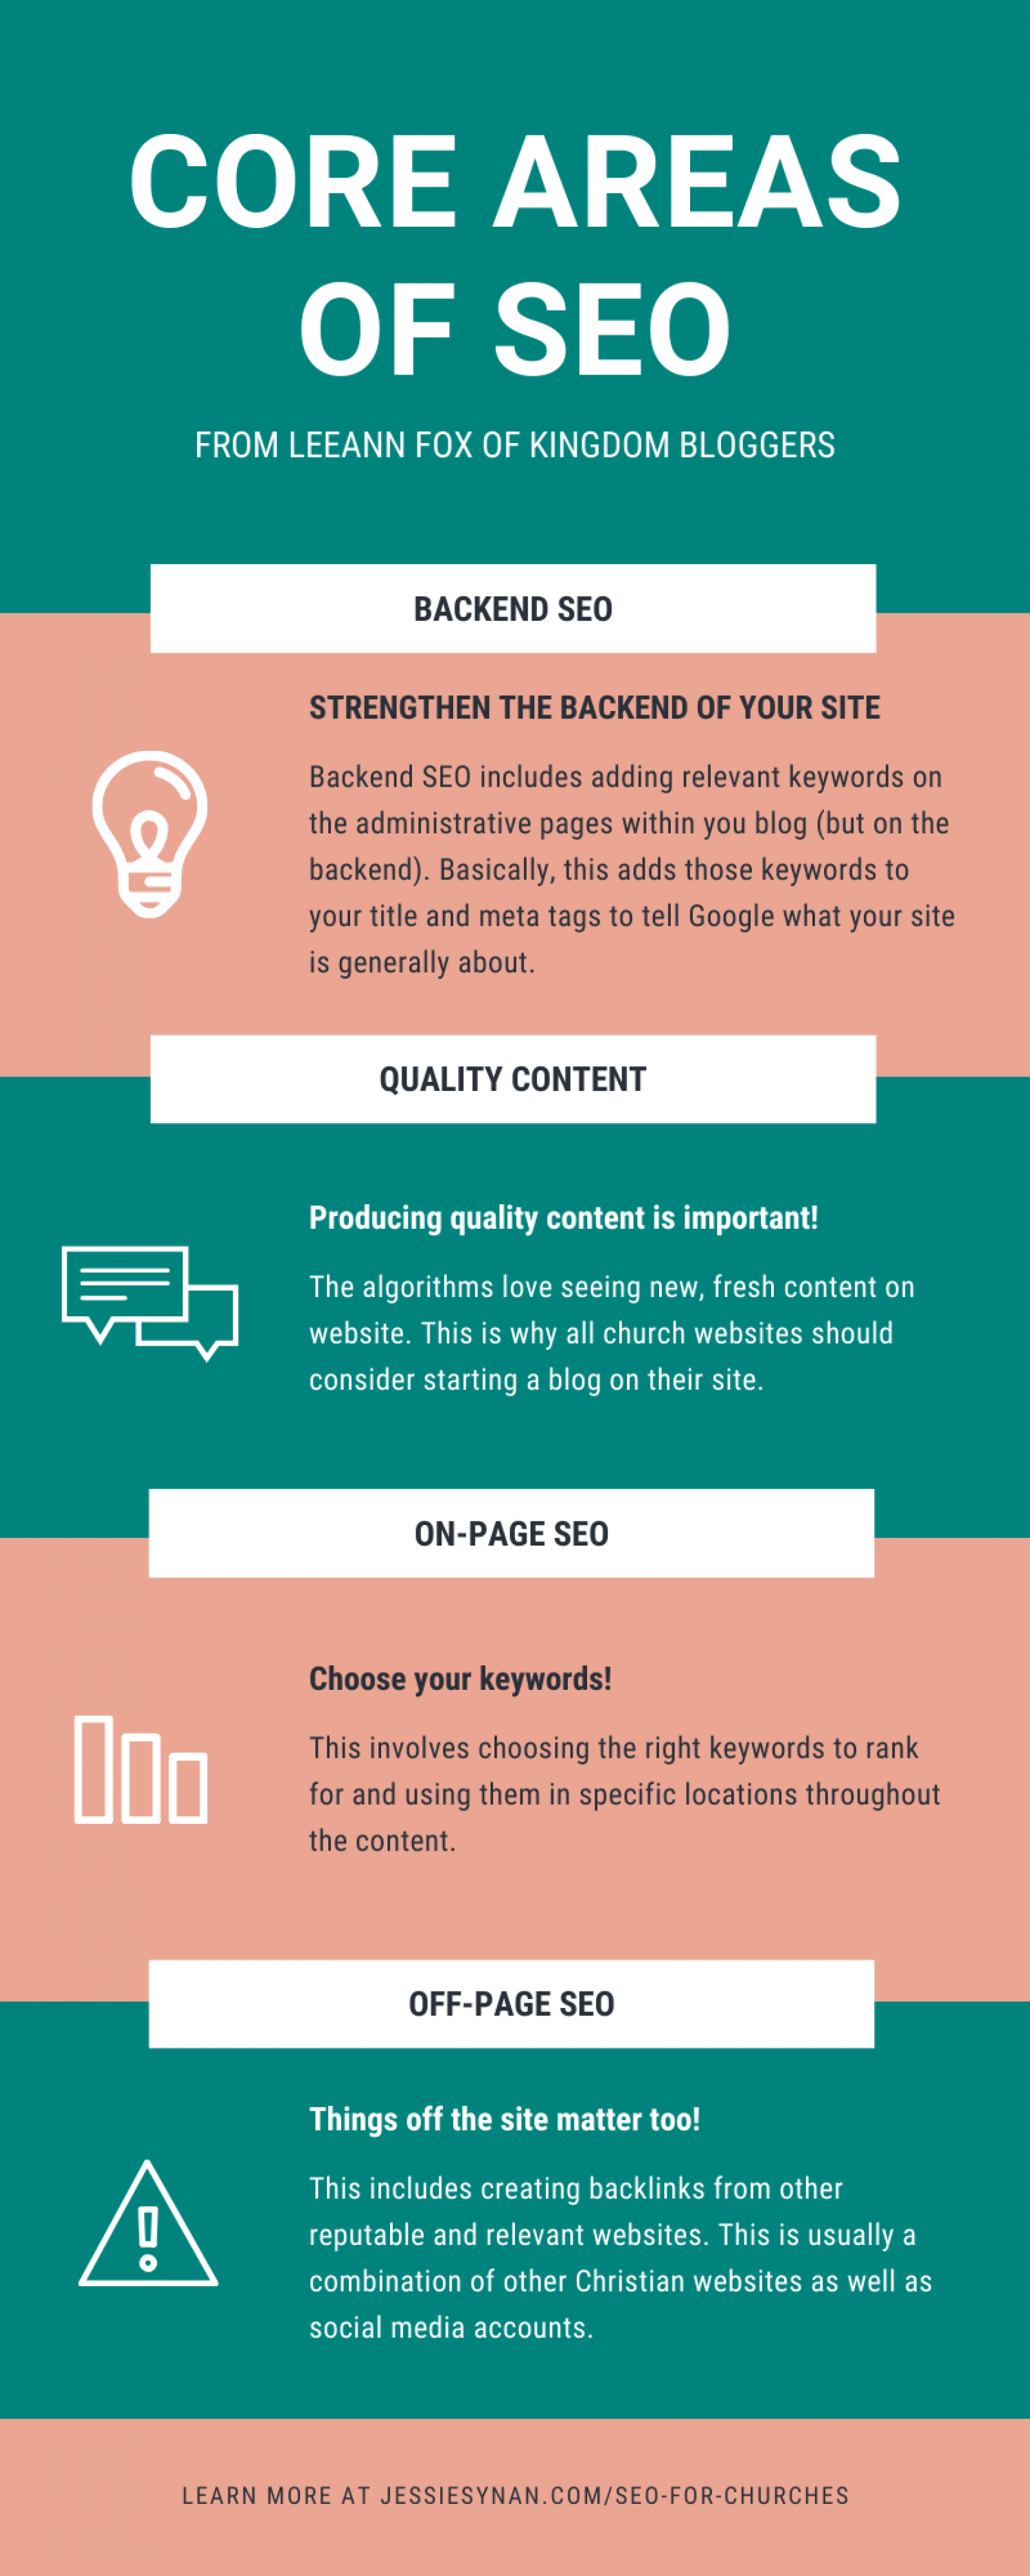 Best Practices: The Importance of SEO for Churches - Jessie Synan Infographic